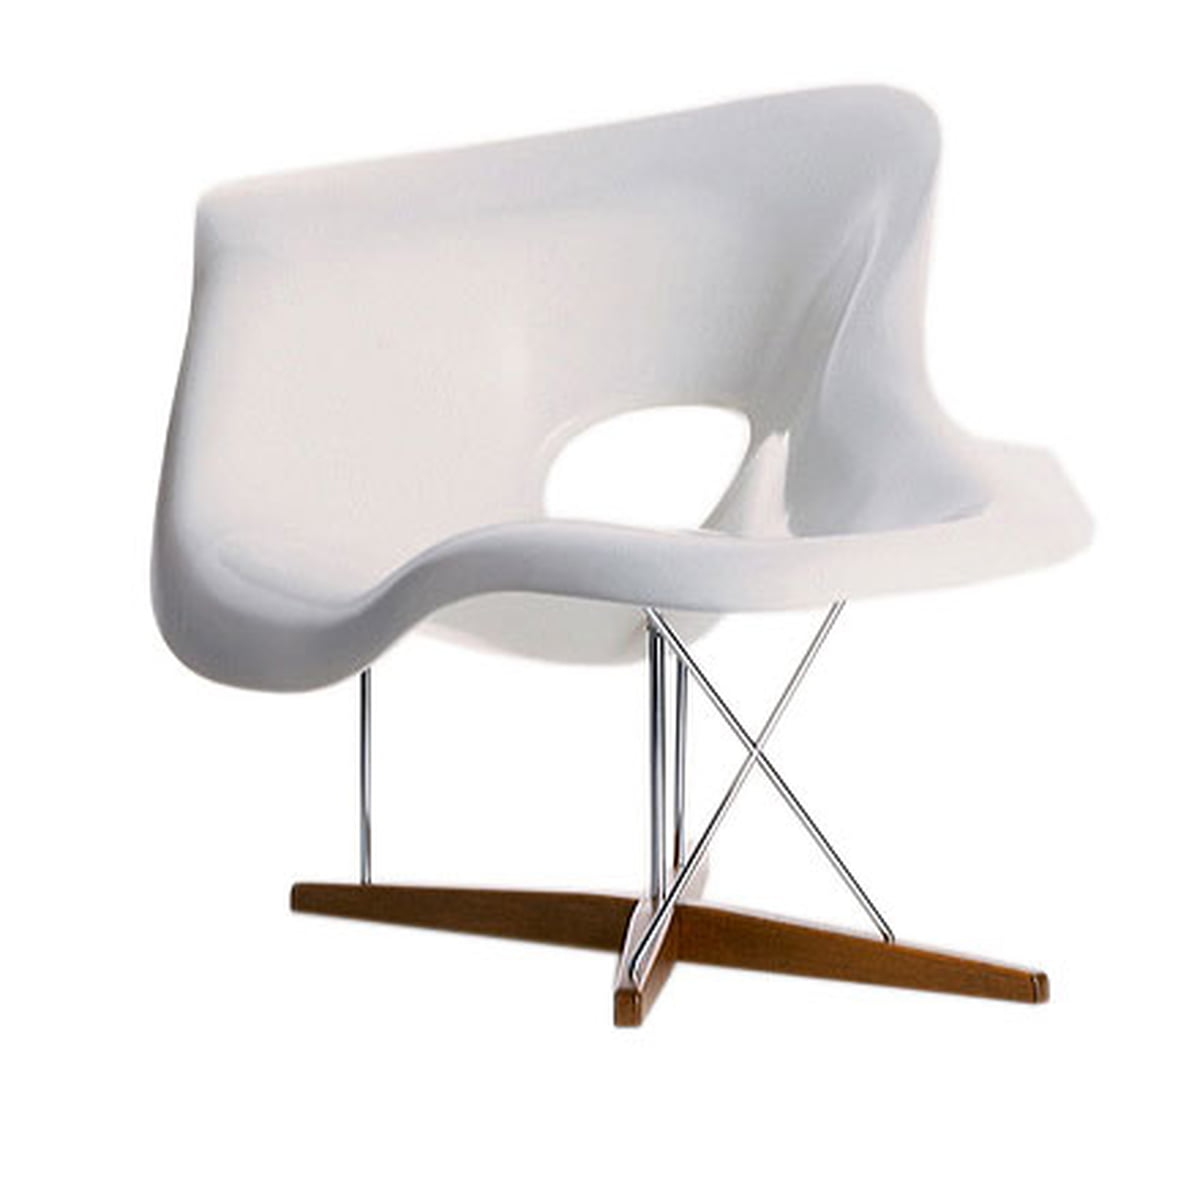 La chaise vitra shop for Chaise eames rar vitra